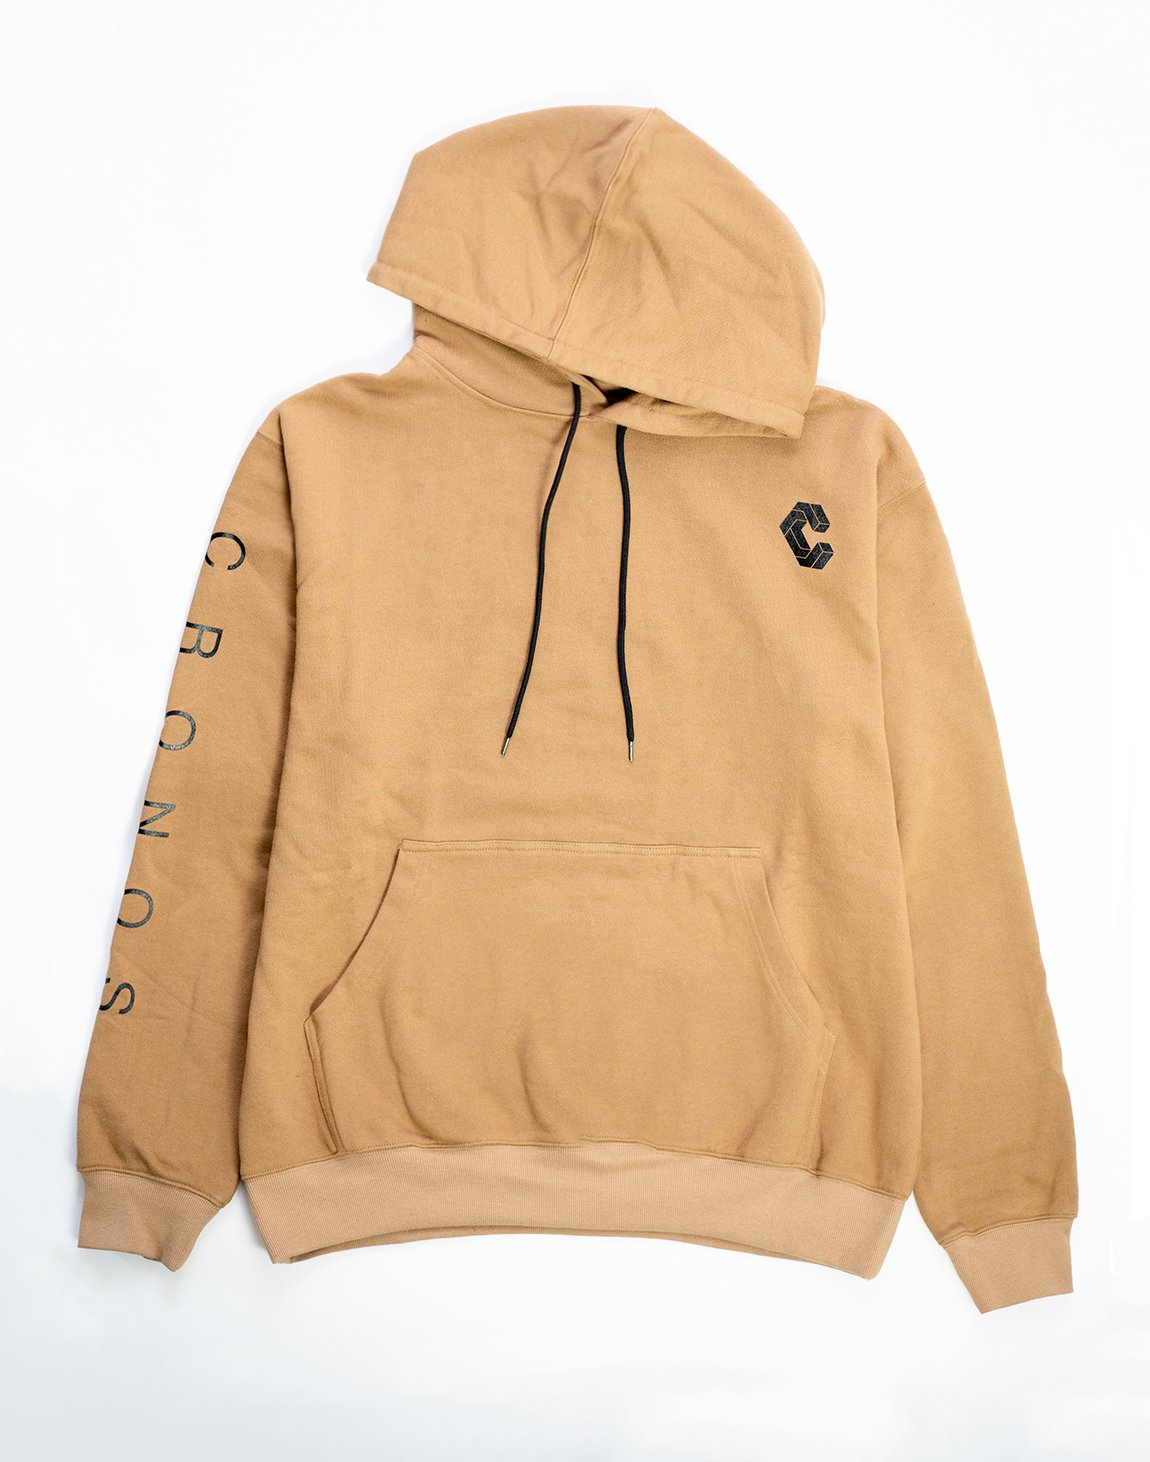 <img class='new_mark_img1' src='https://img.shop-pro.jp/img/new/icons1.gif' style='border:none;display:inline;margin:0px;padding:0px;width:auto;' />CRONOS ARM LOGO PARKA BROWN